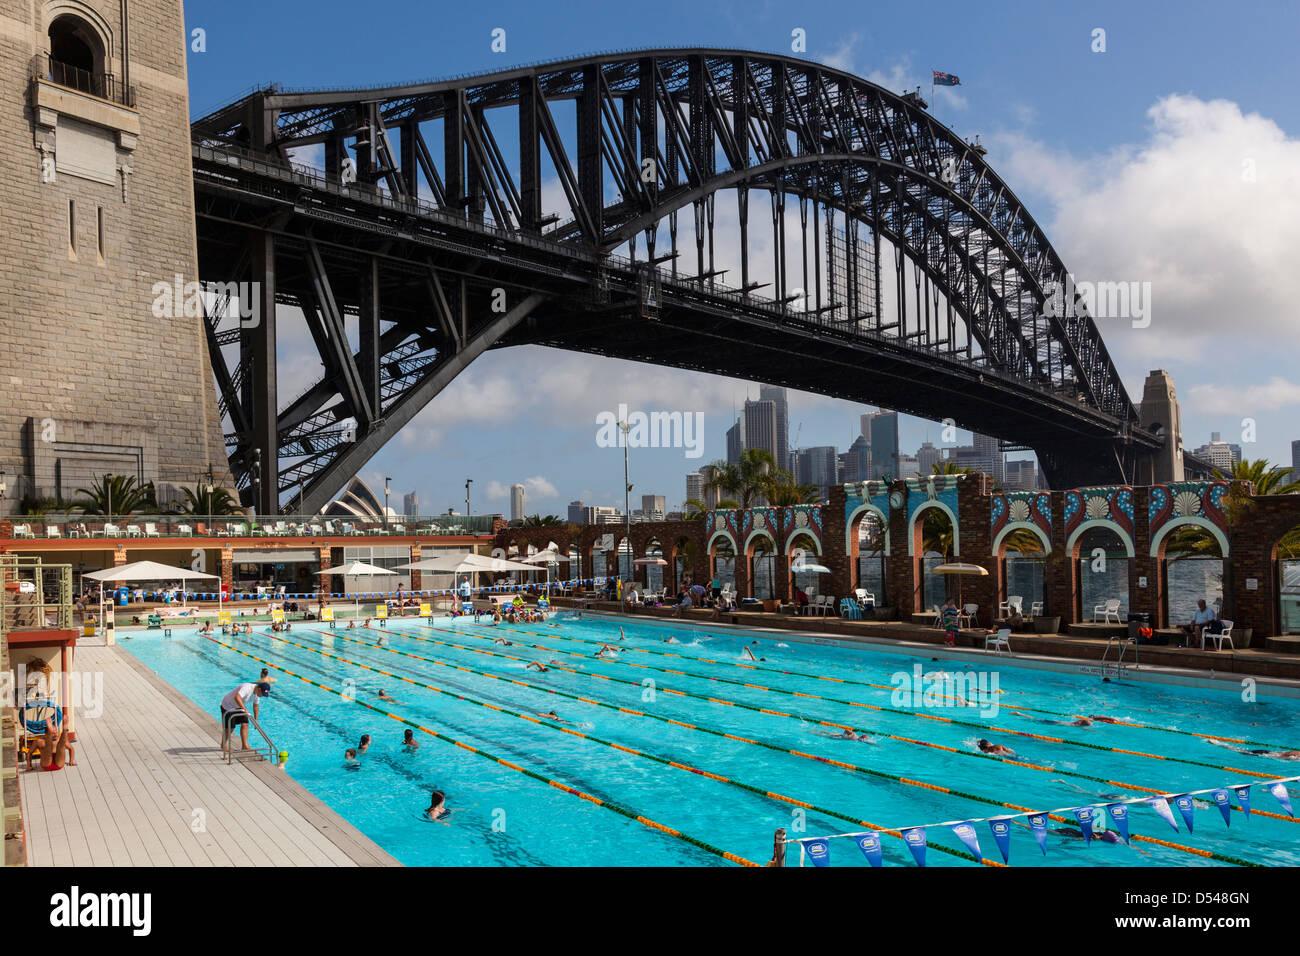 North Sydney Olympic Pool Stock Photos North Sydney Olympic Pool Stock Images Alamy